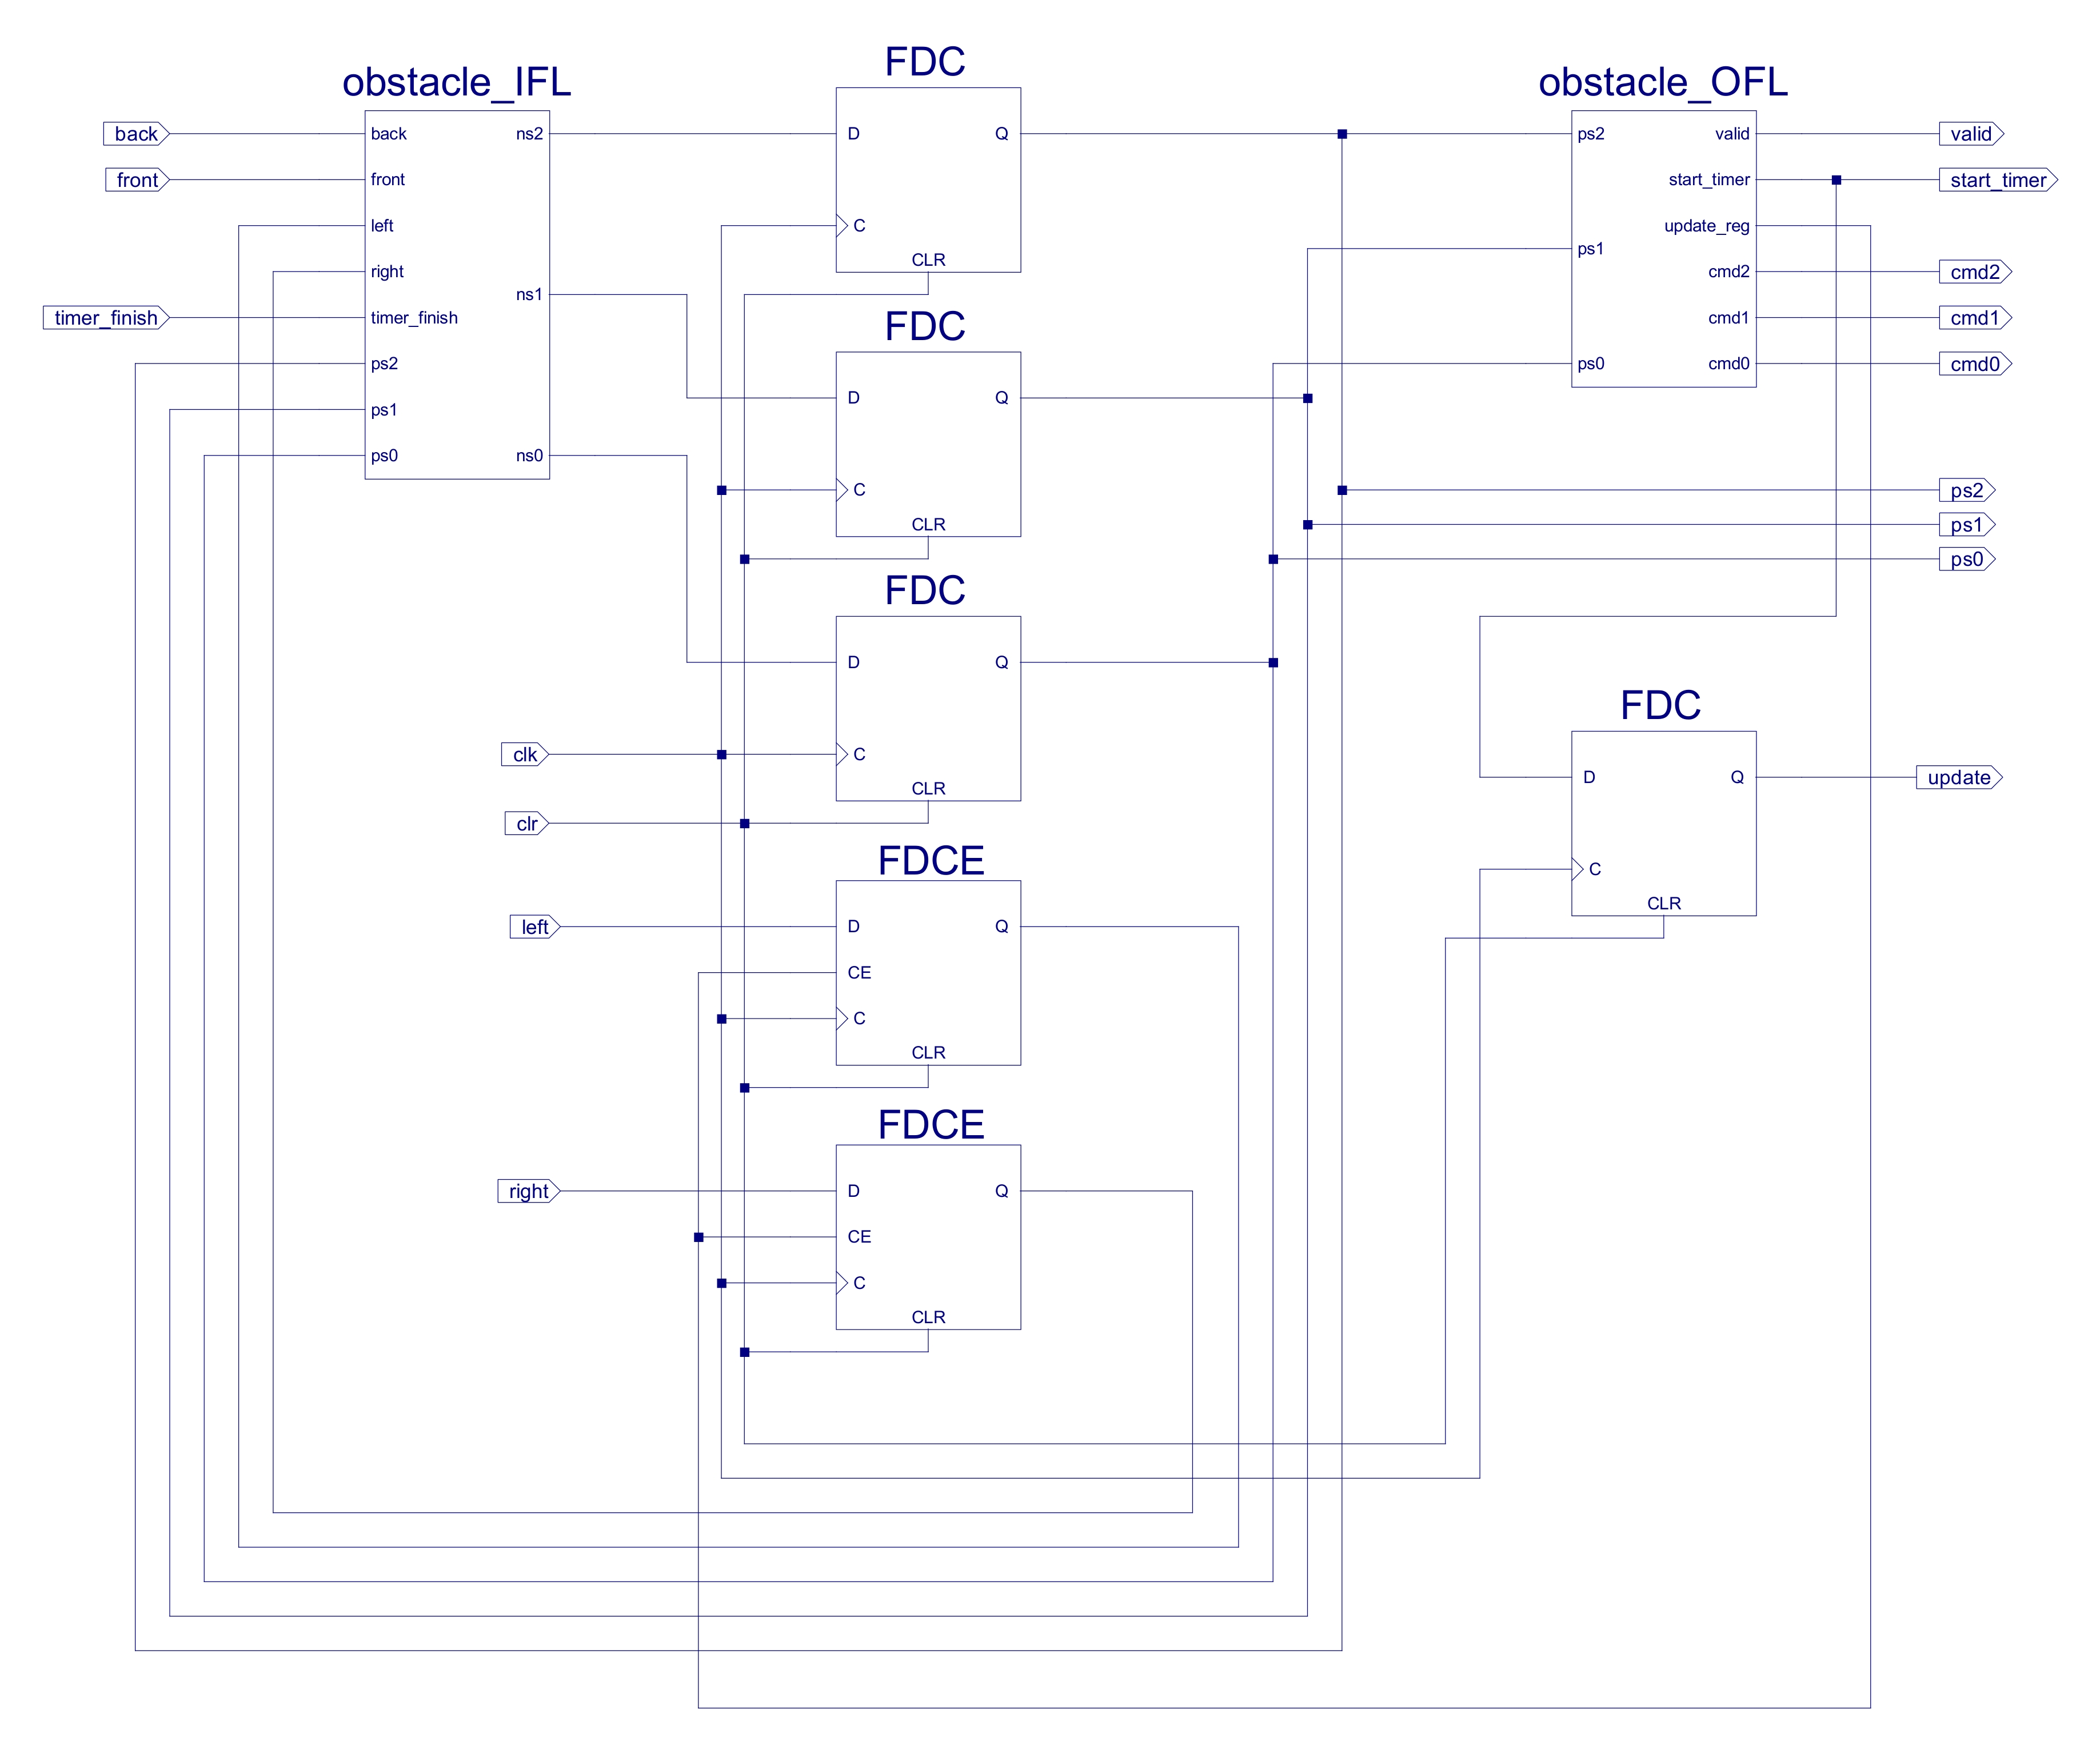 Robocockroach Lm555 Electronics Schematic Diagram Two Stage Time Delay Circuit Part 29 The Symbol Fdc Is A D Type Flip Flop Hardware Requirements Inside Cpld Are Listed In Figure 18 Initial Testing Was Performed Using